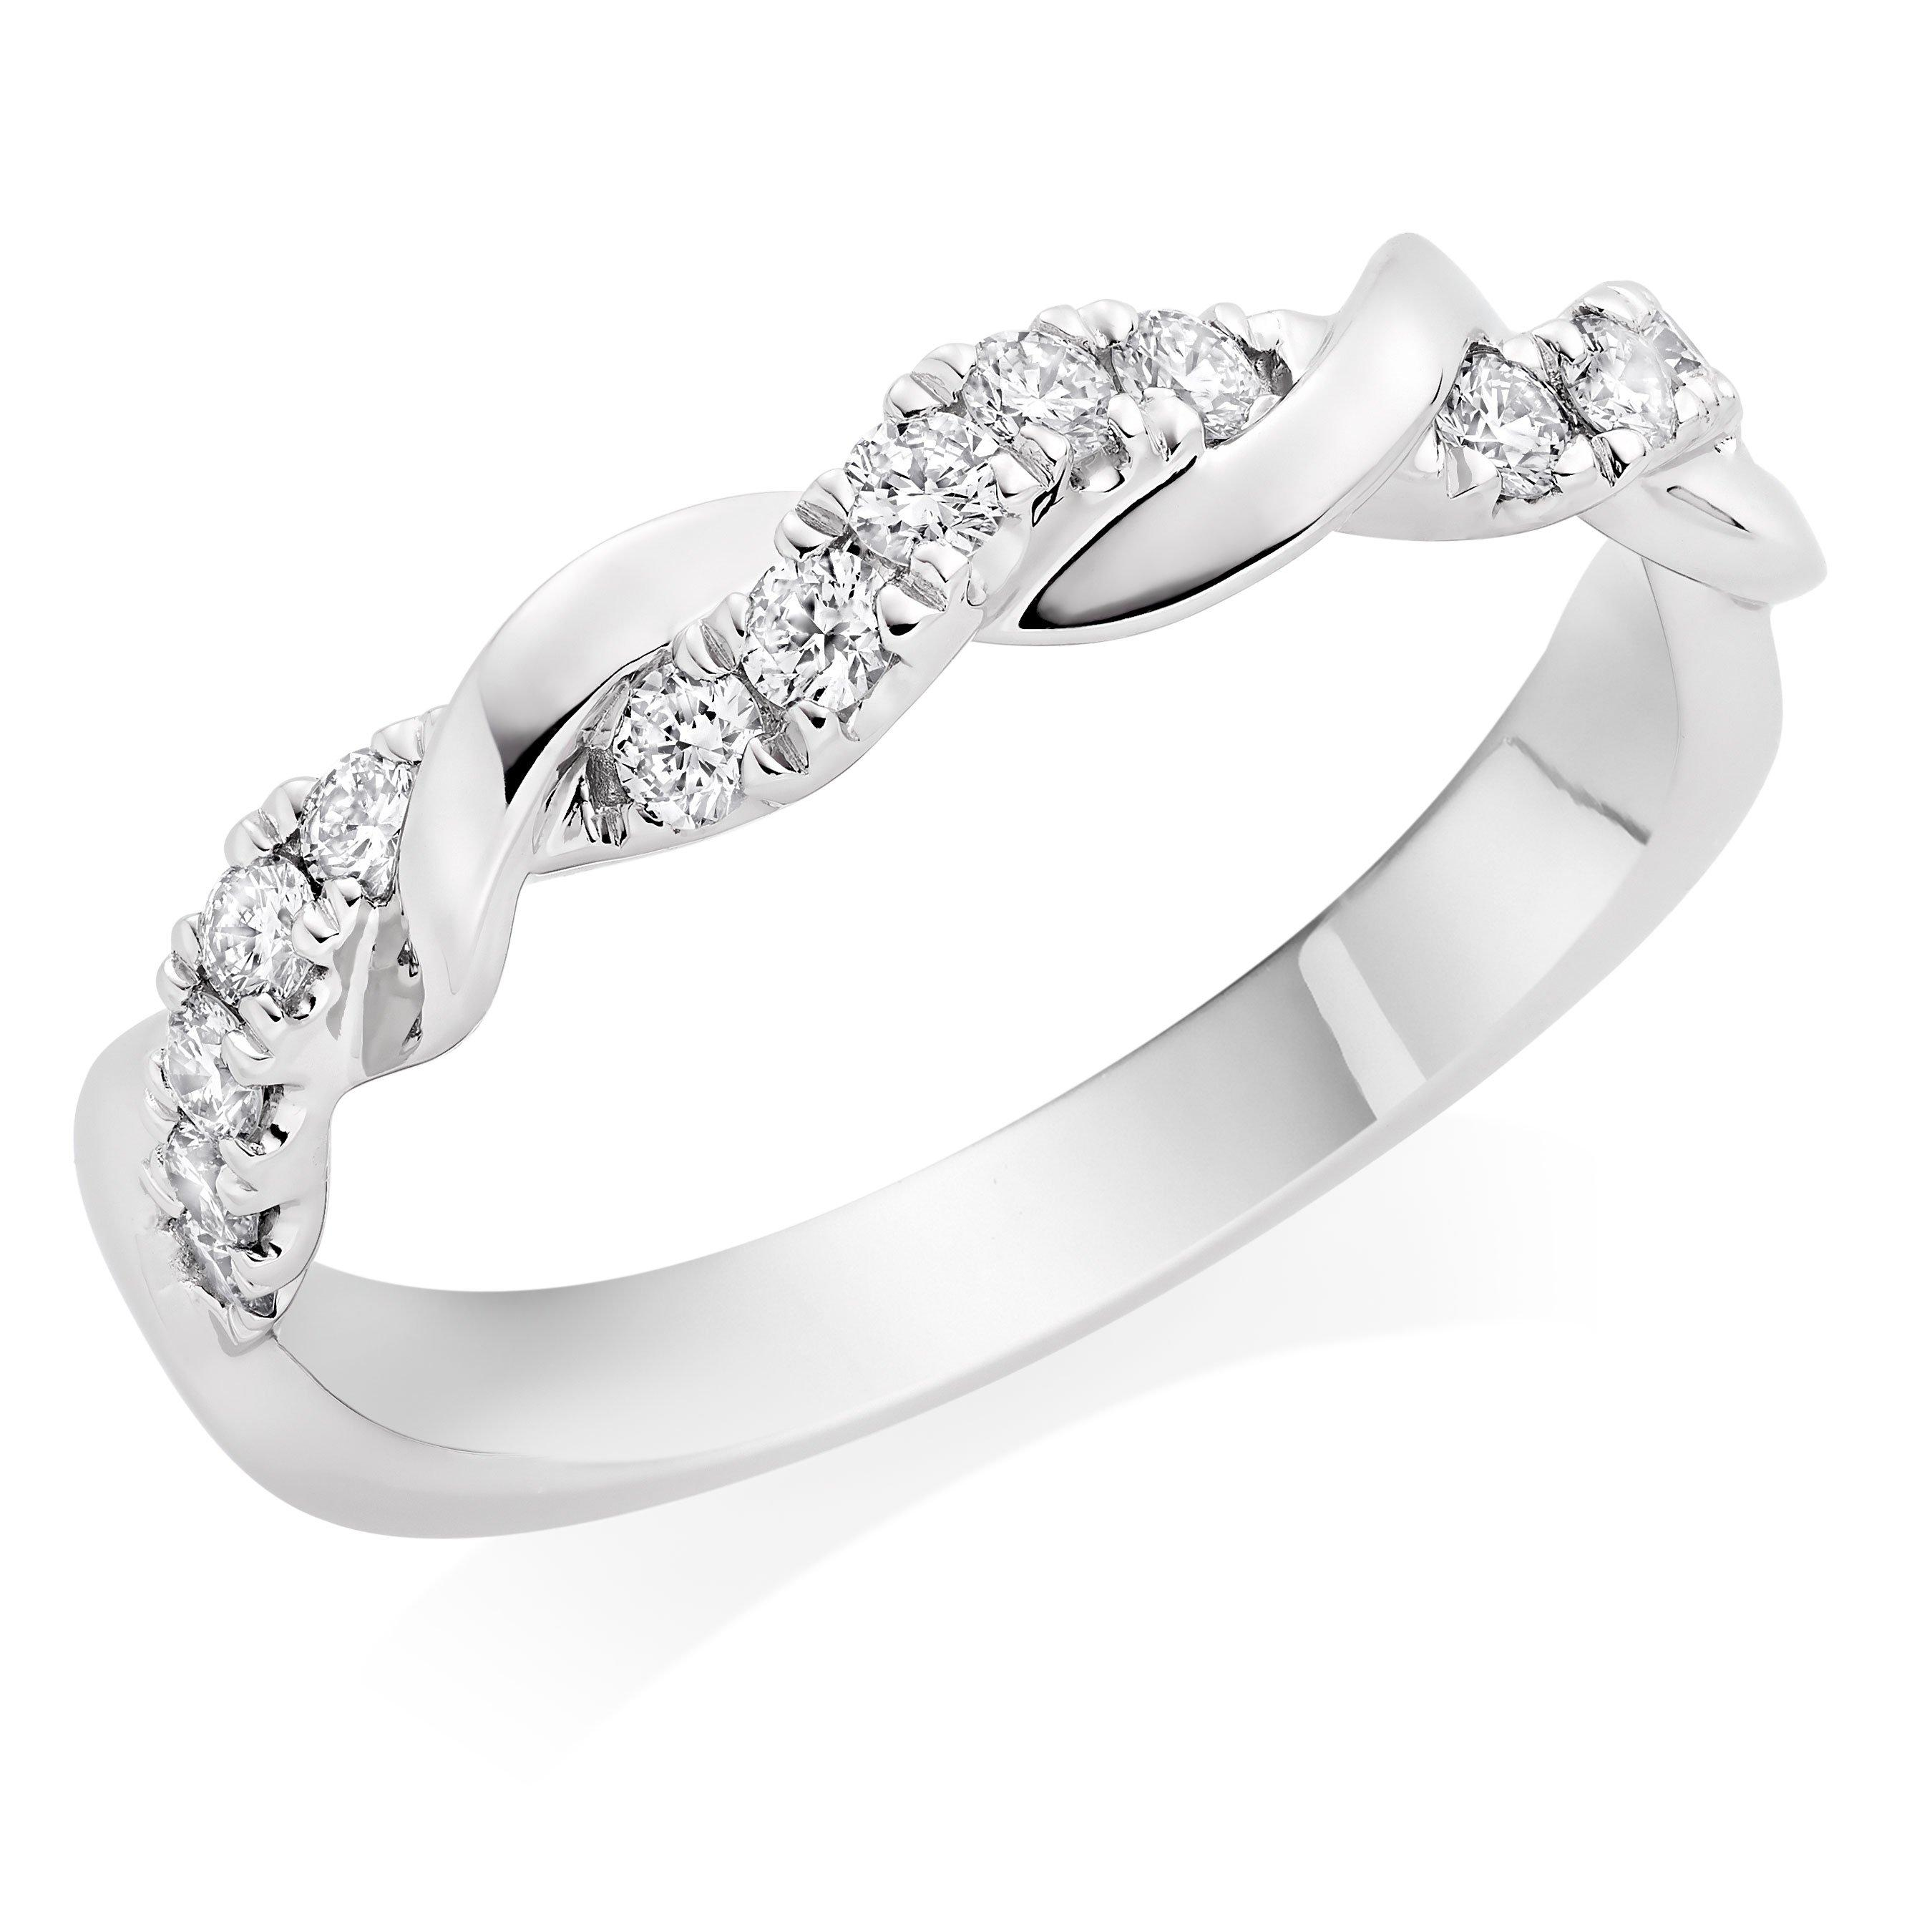 Entwine Platinum Diamond Twist Wedding Ring